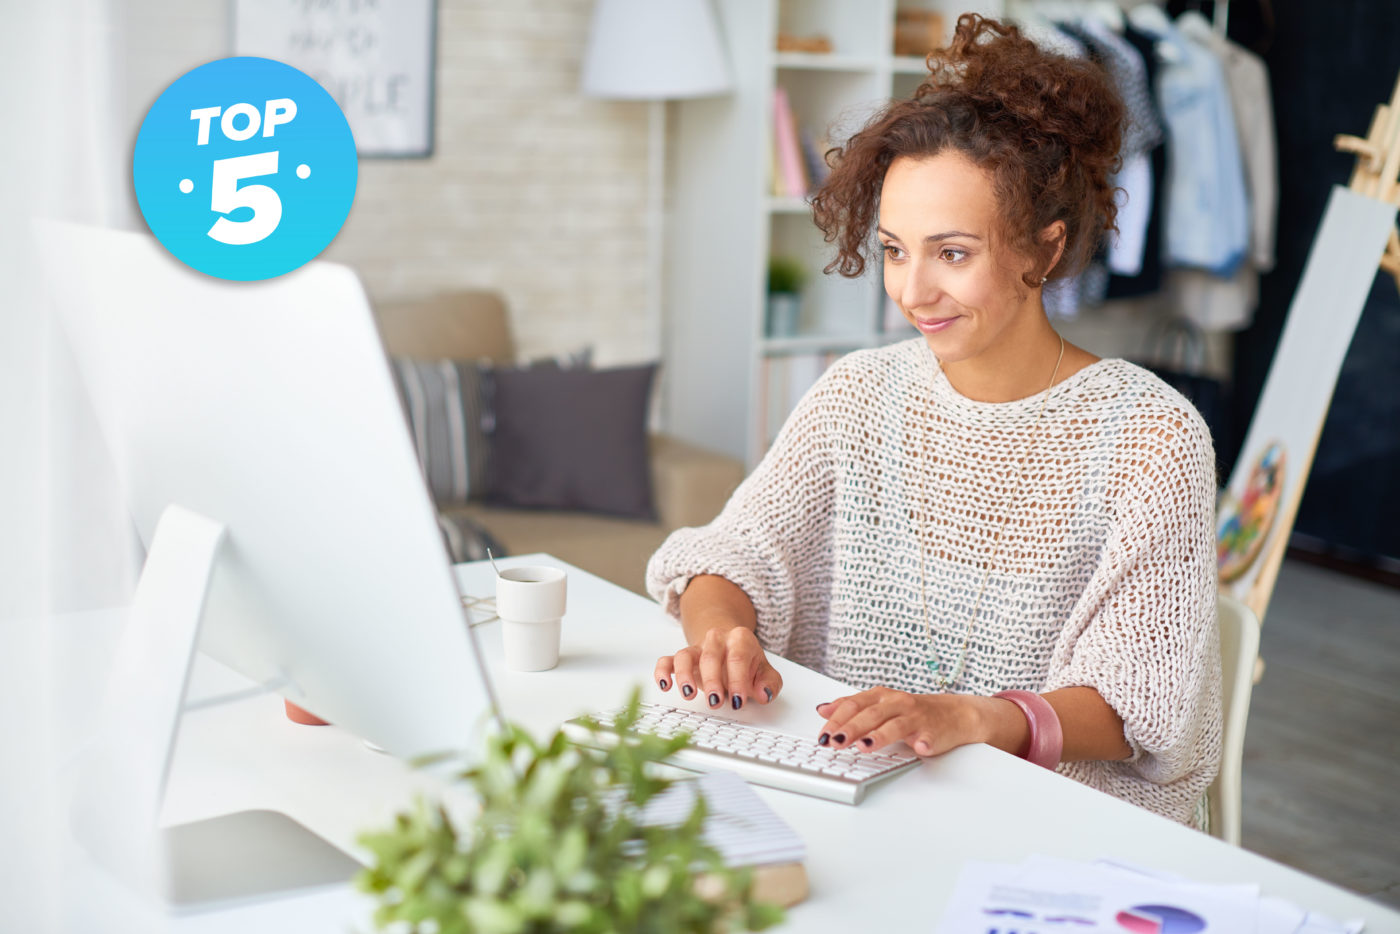 Top 5: Tips for Working from Home